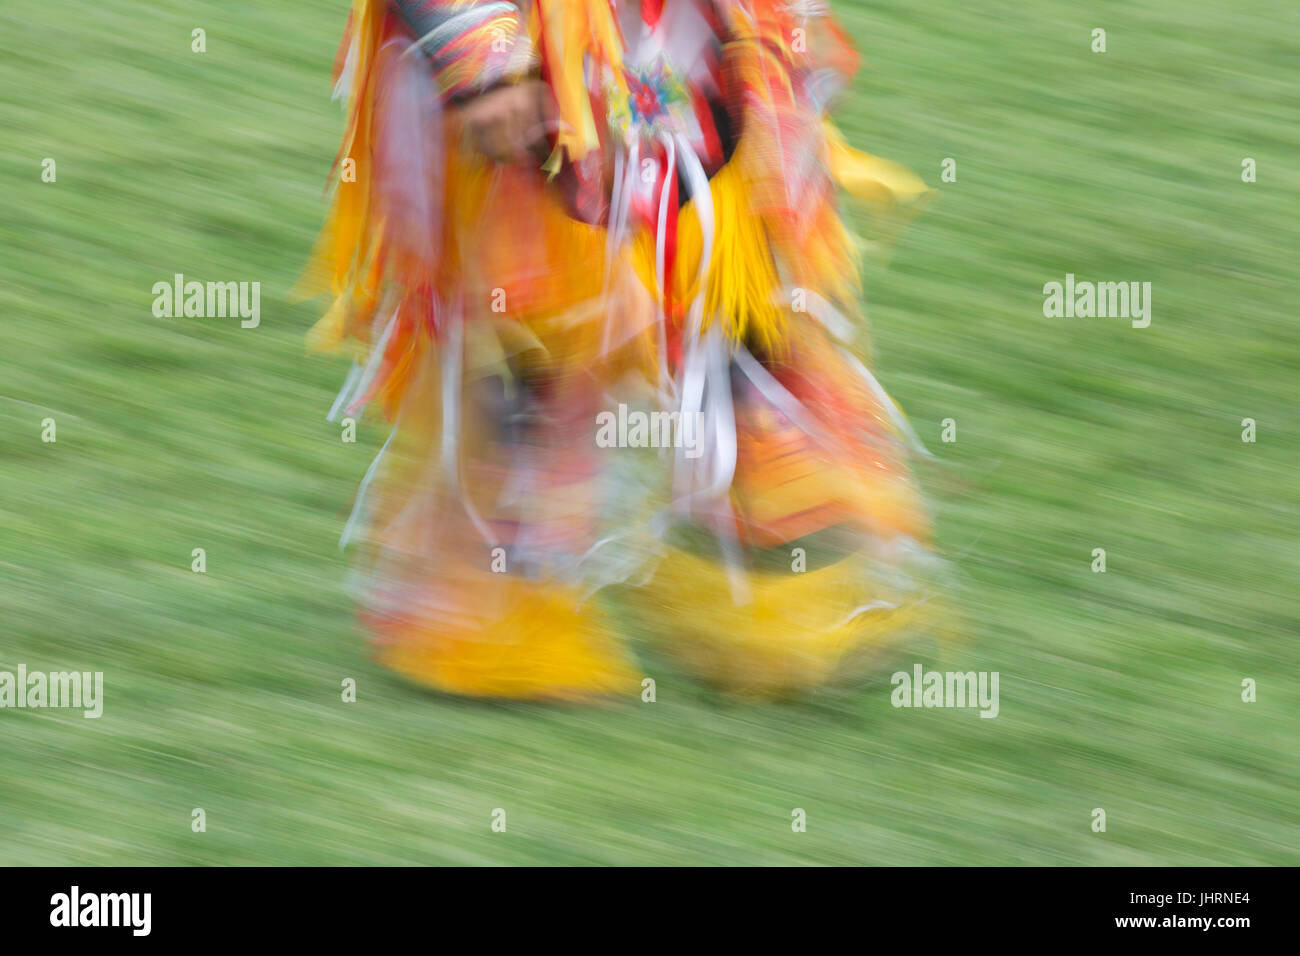 Canada Day powwow in Prince's Island Park.  The celebration commemorates Canada's 150th anniversary of confederation. - Stock Image